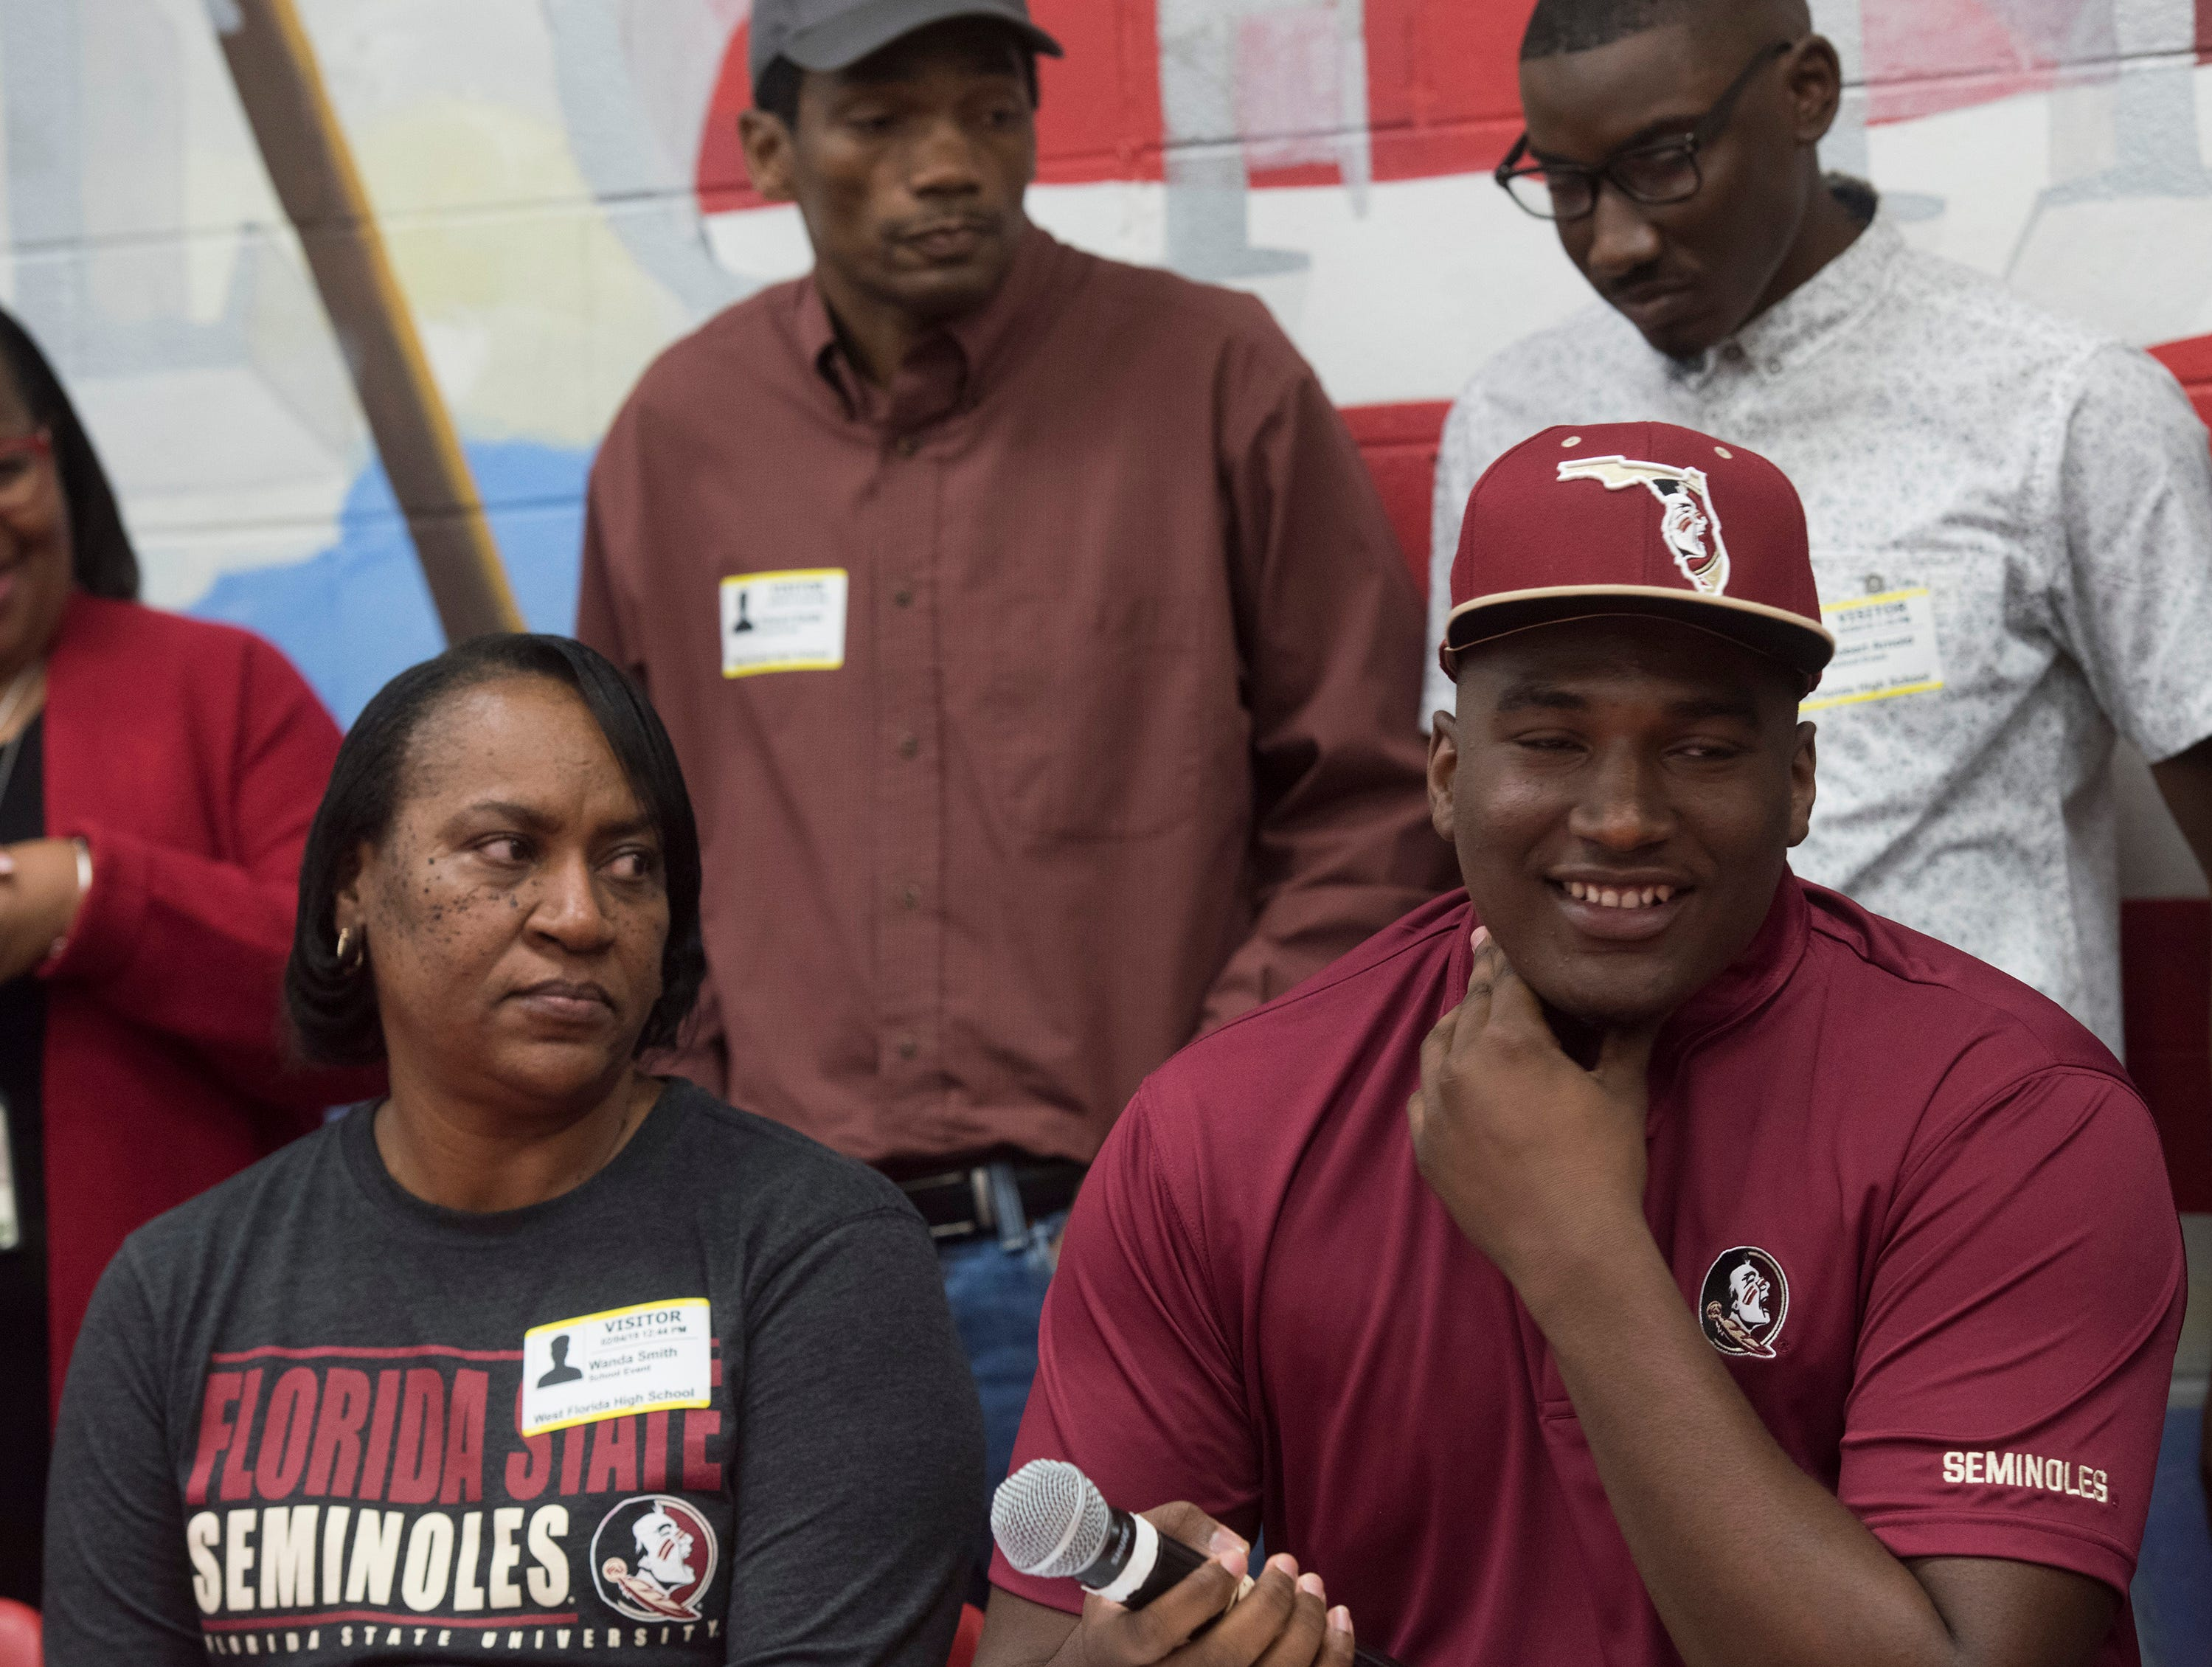 West Florida High School's Darius Washington commits to Florida State University on National Signing Day, while his family looks on Wednesday Feb. 6, 2019.